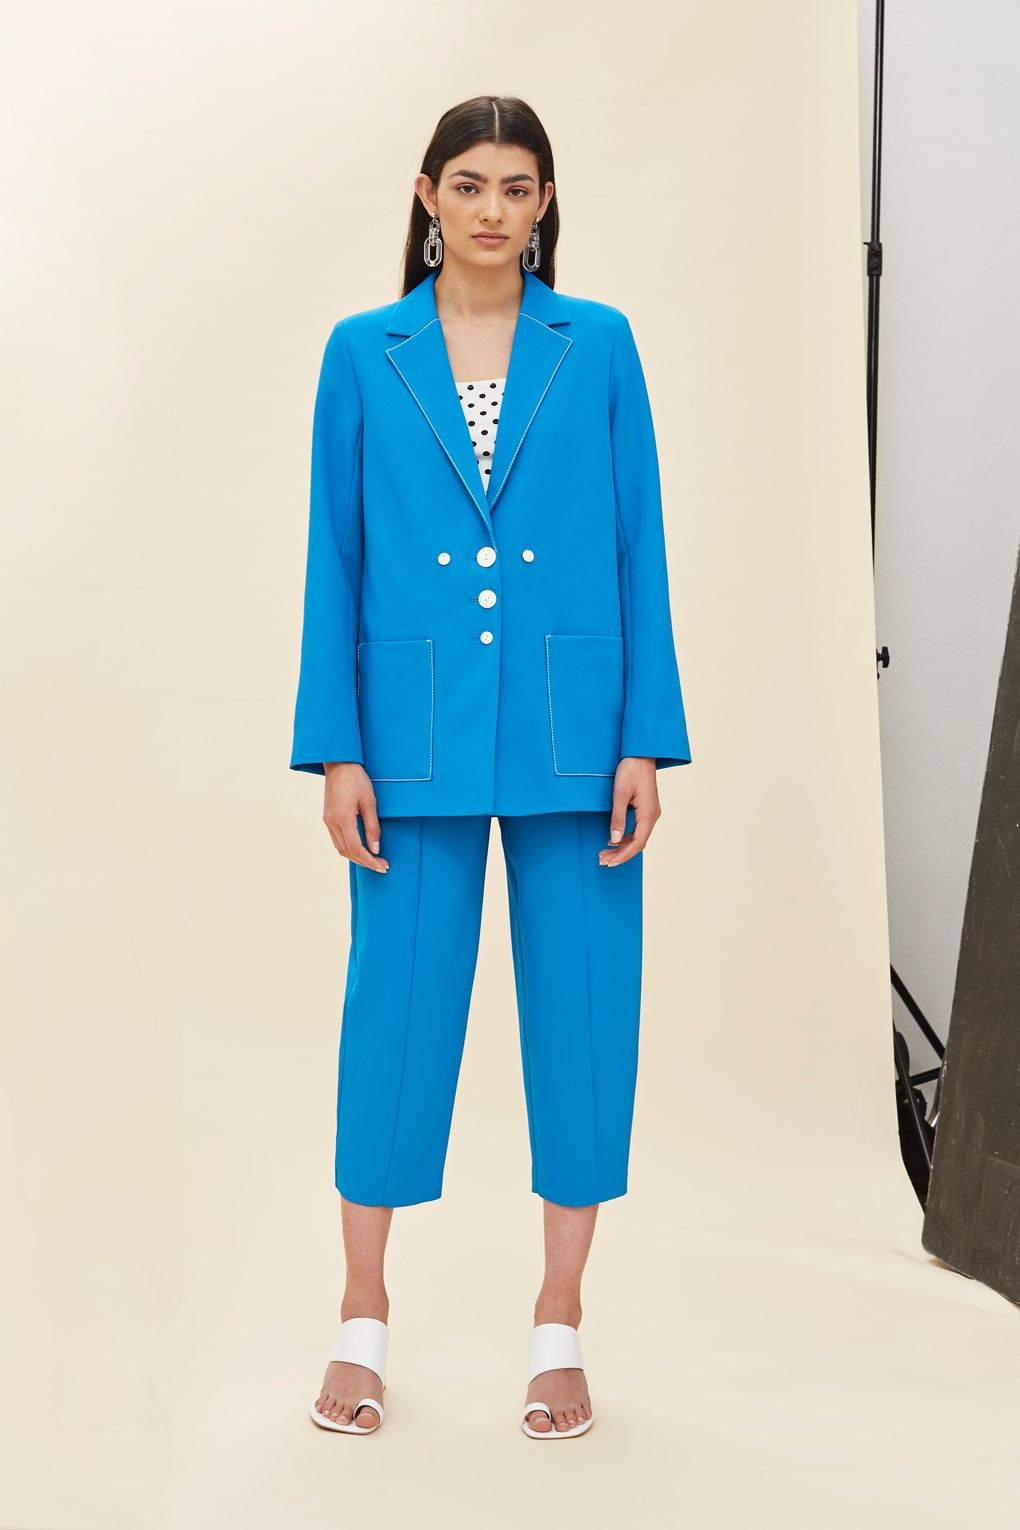 HOW TO STYLE A SUIT -topshop.jpg